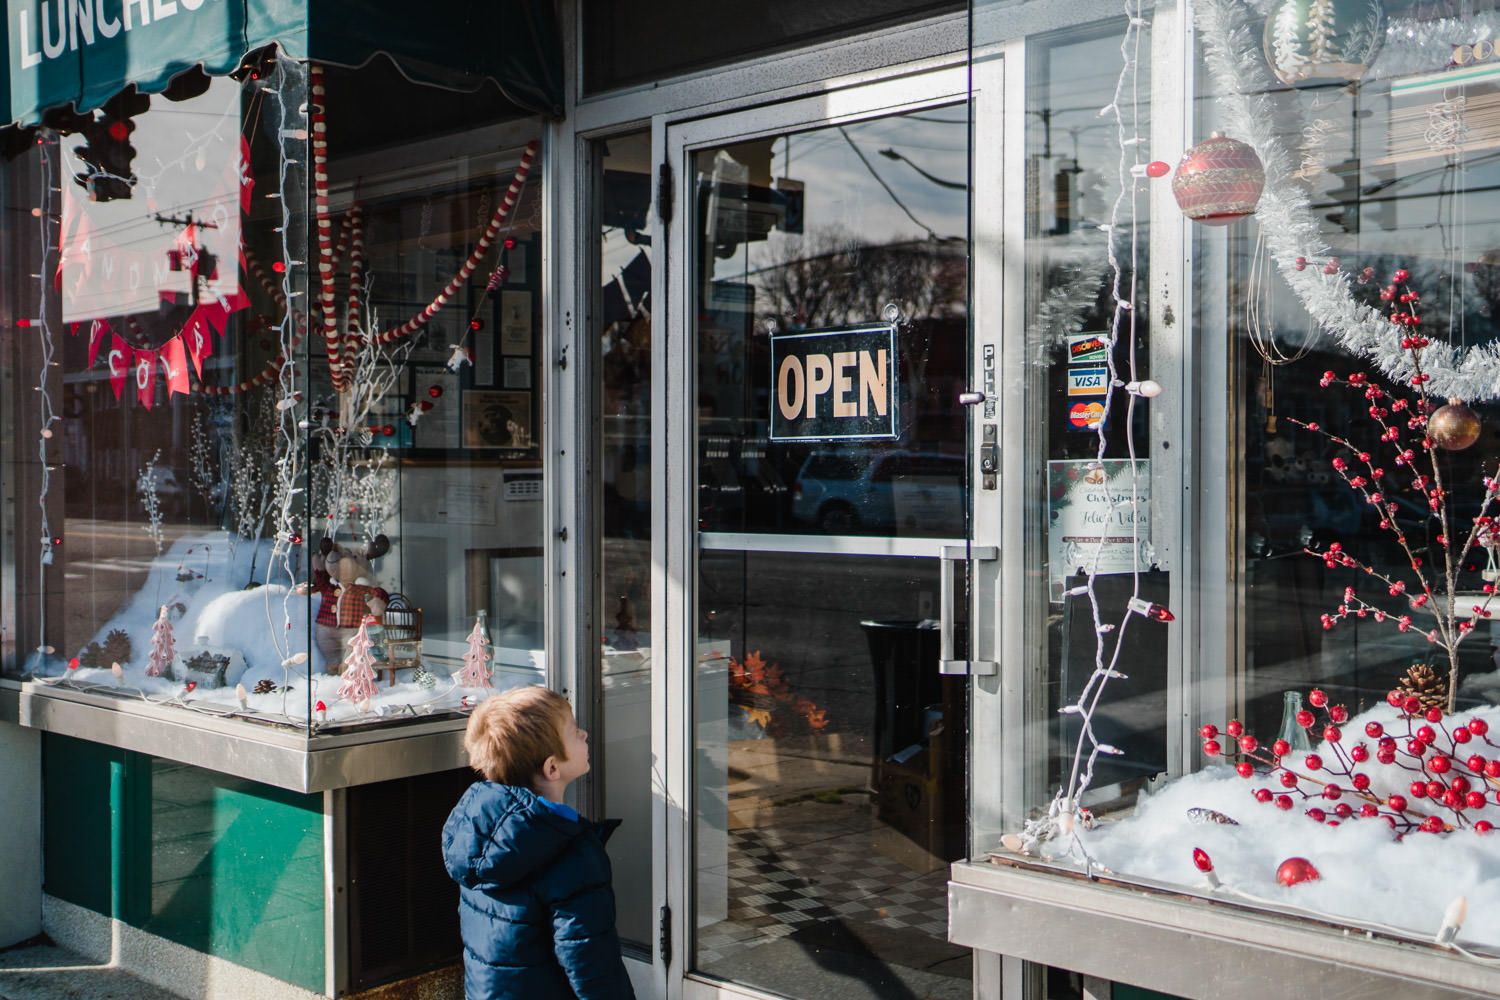 A little boy looks in a store window decorated for the holidays.